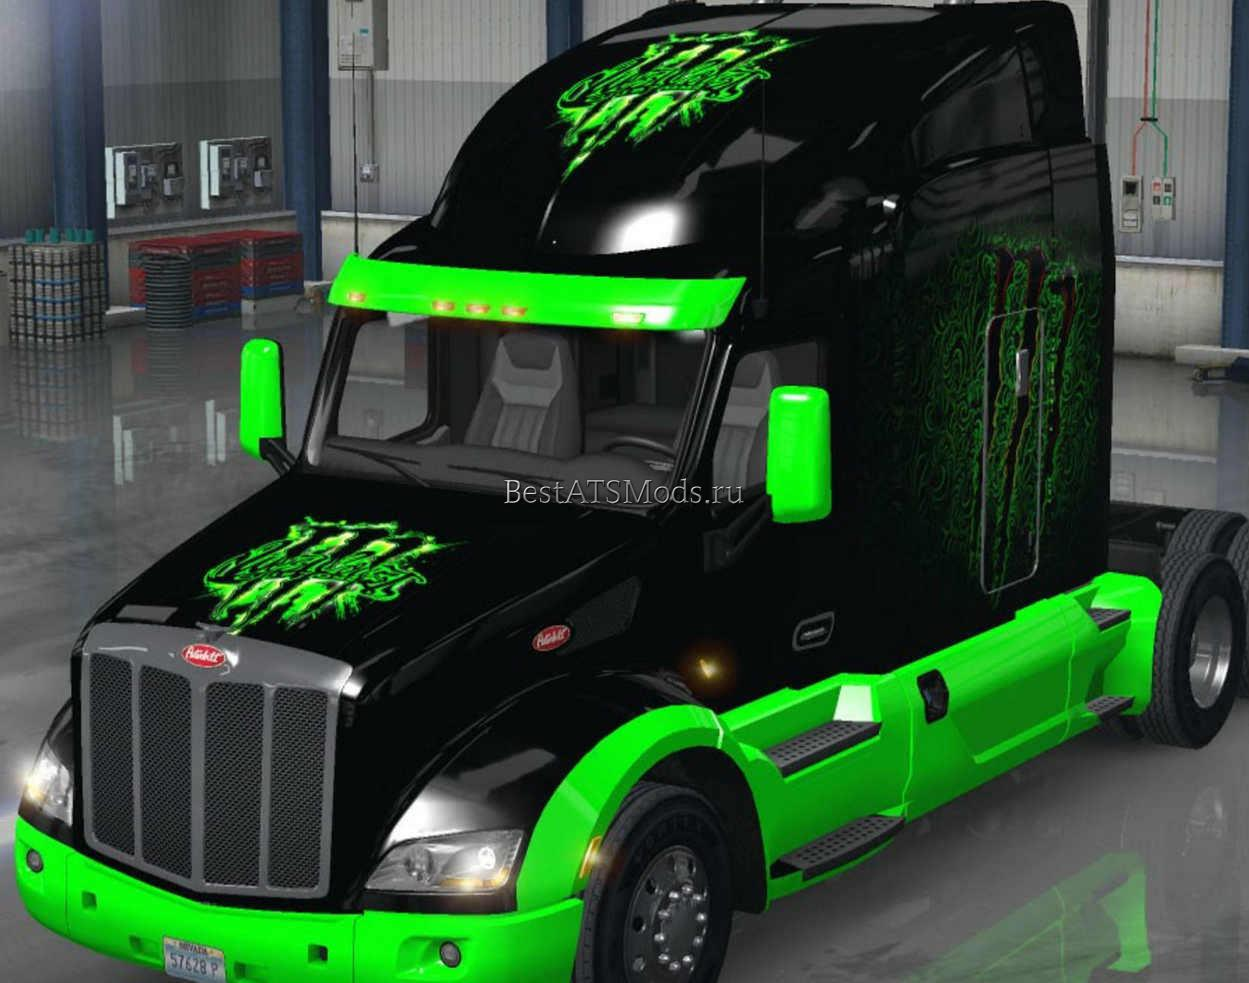 rsz_Мод_скин_peterbilt_579_monster_energy_skin_mod_american_truck_simulator